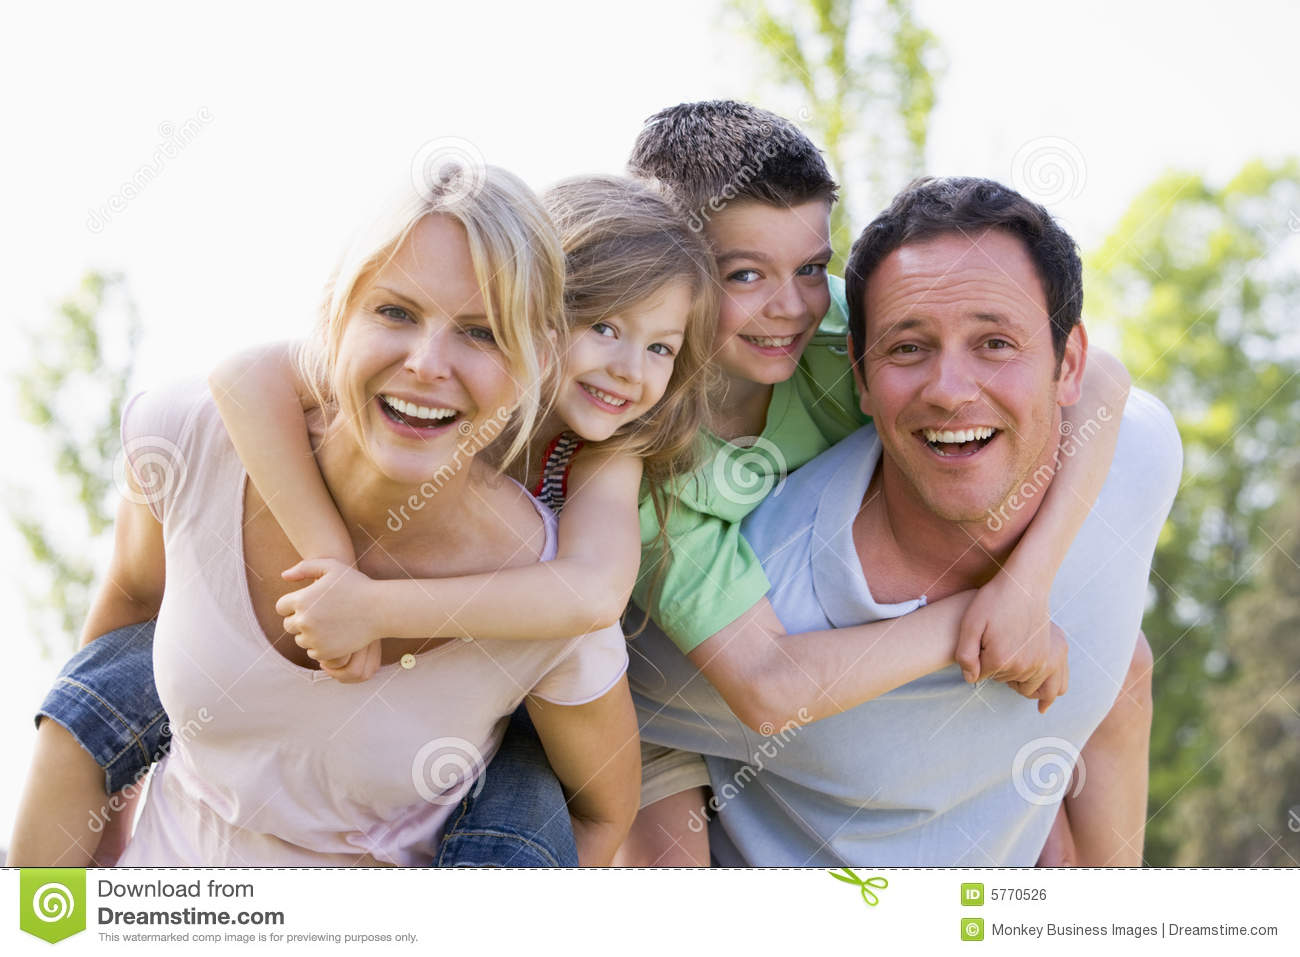 Couple giving two children piggyback rides smiling